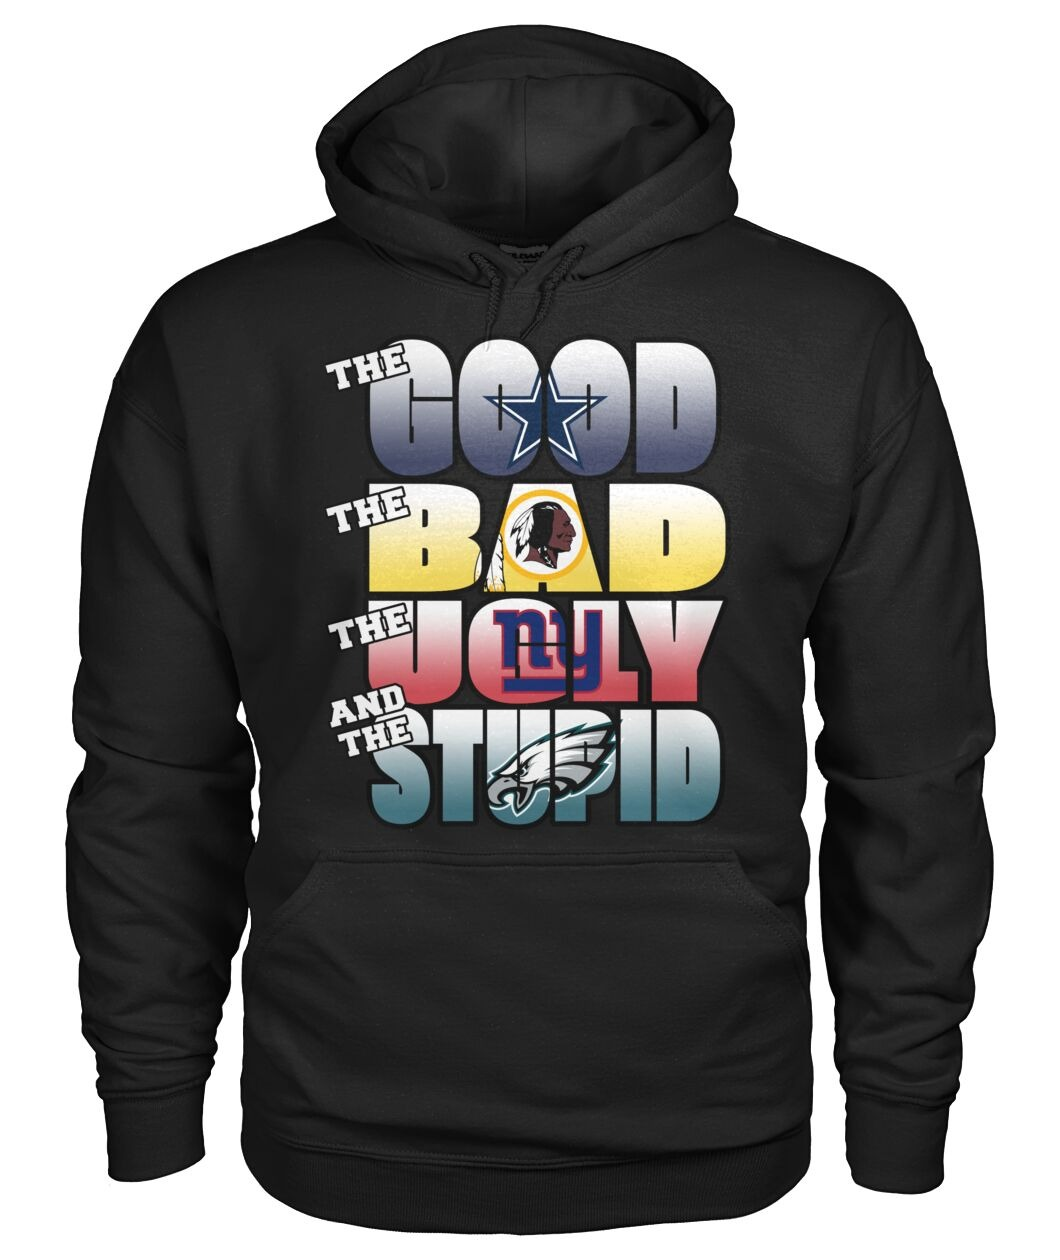 The good Dallas cowboys The bad Redskins The ugly Ny Giants and the stupid Philadelphia Eagles hoodie